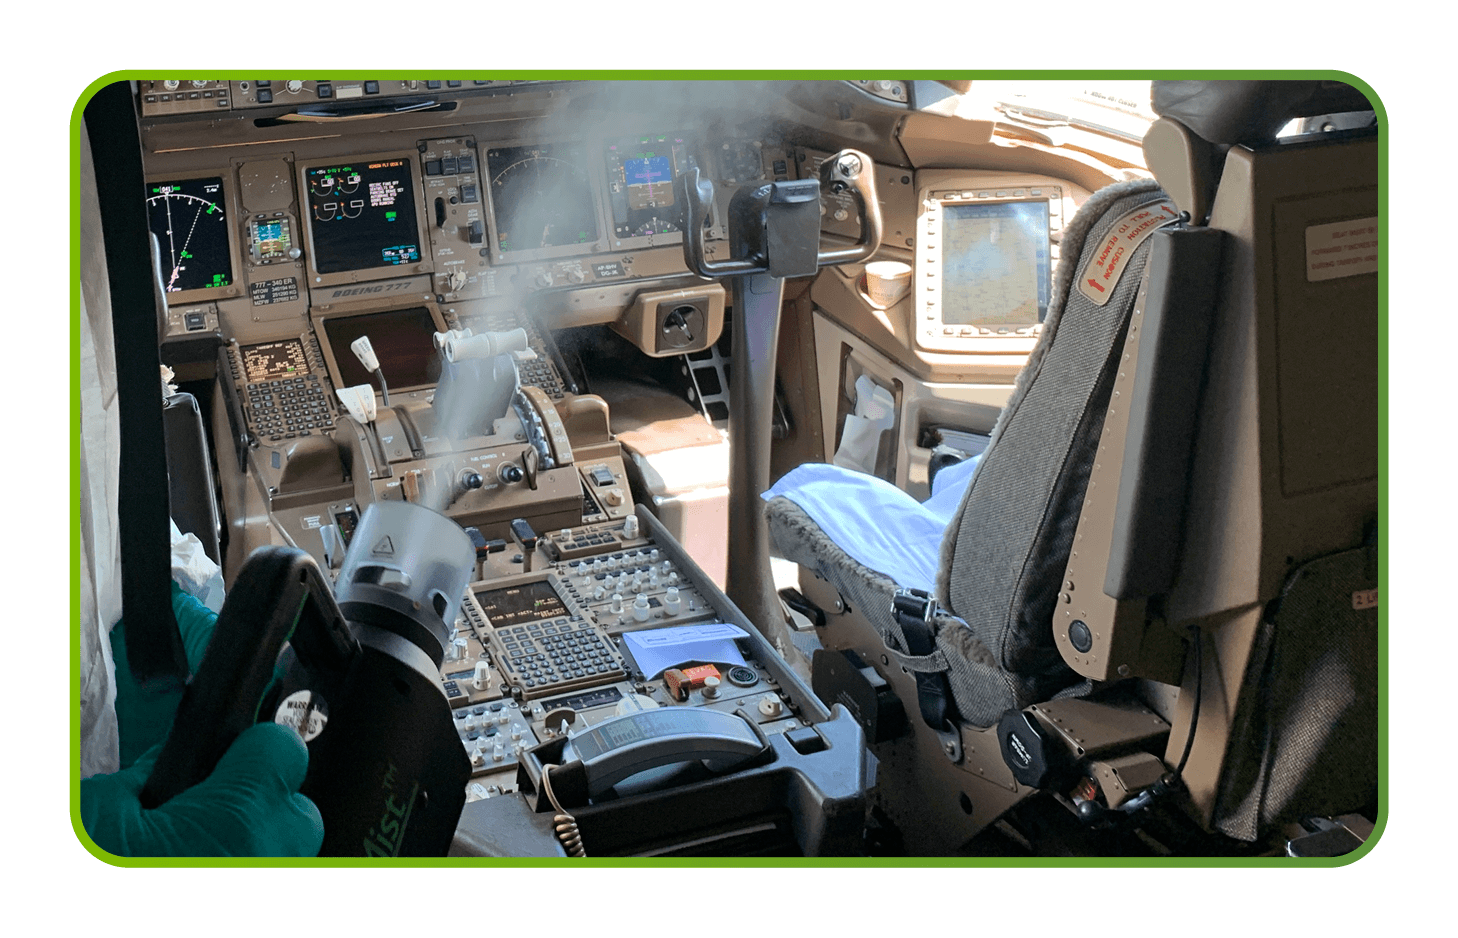 Disinfection of Airplane